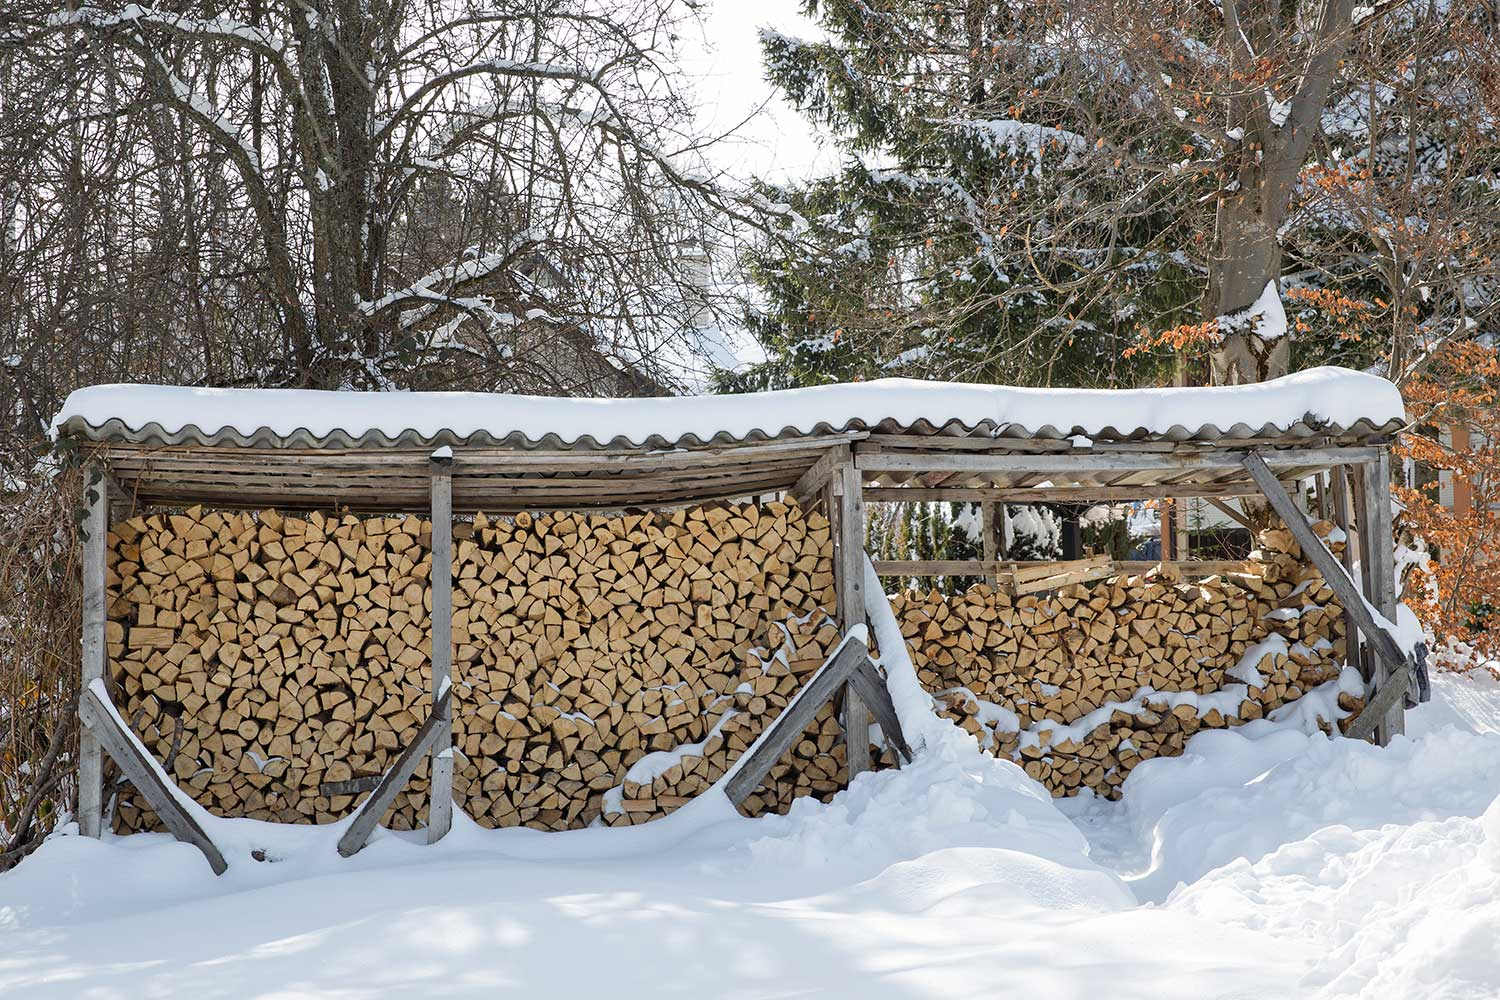 Perfectly arranged stack of wood, ready for a long winter ahead